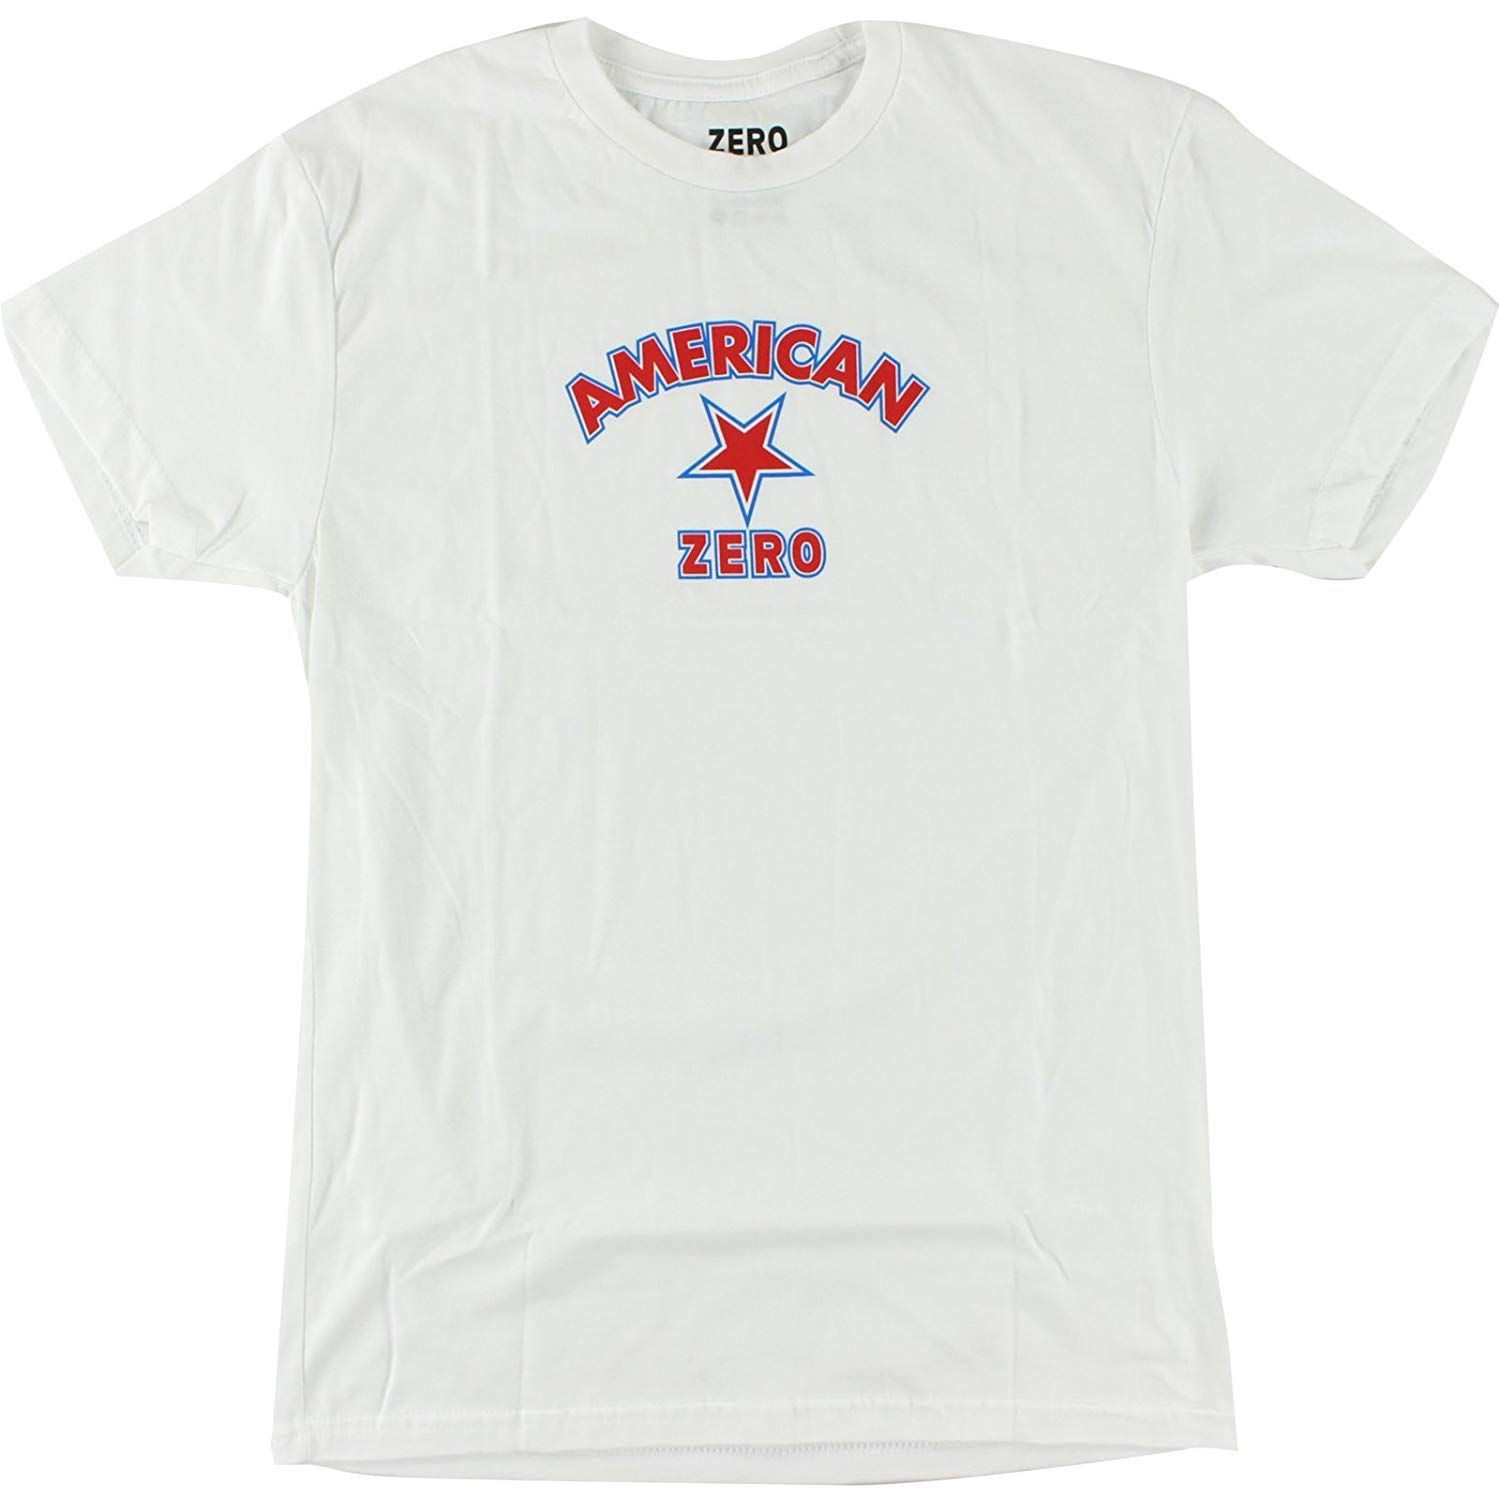 45b083e7 Cheap American T Shirt Size, find American T Shirt Size deals on ...